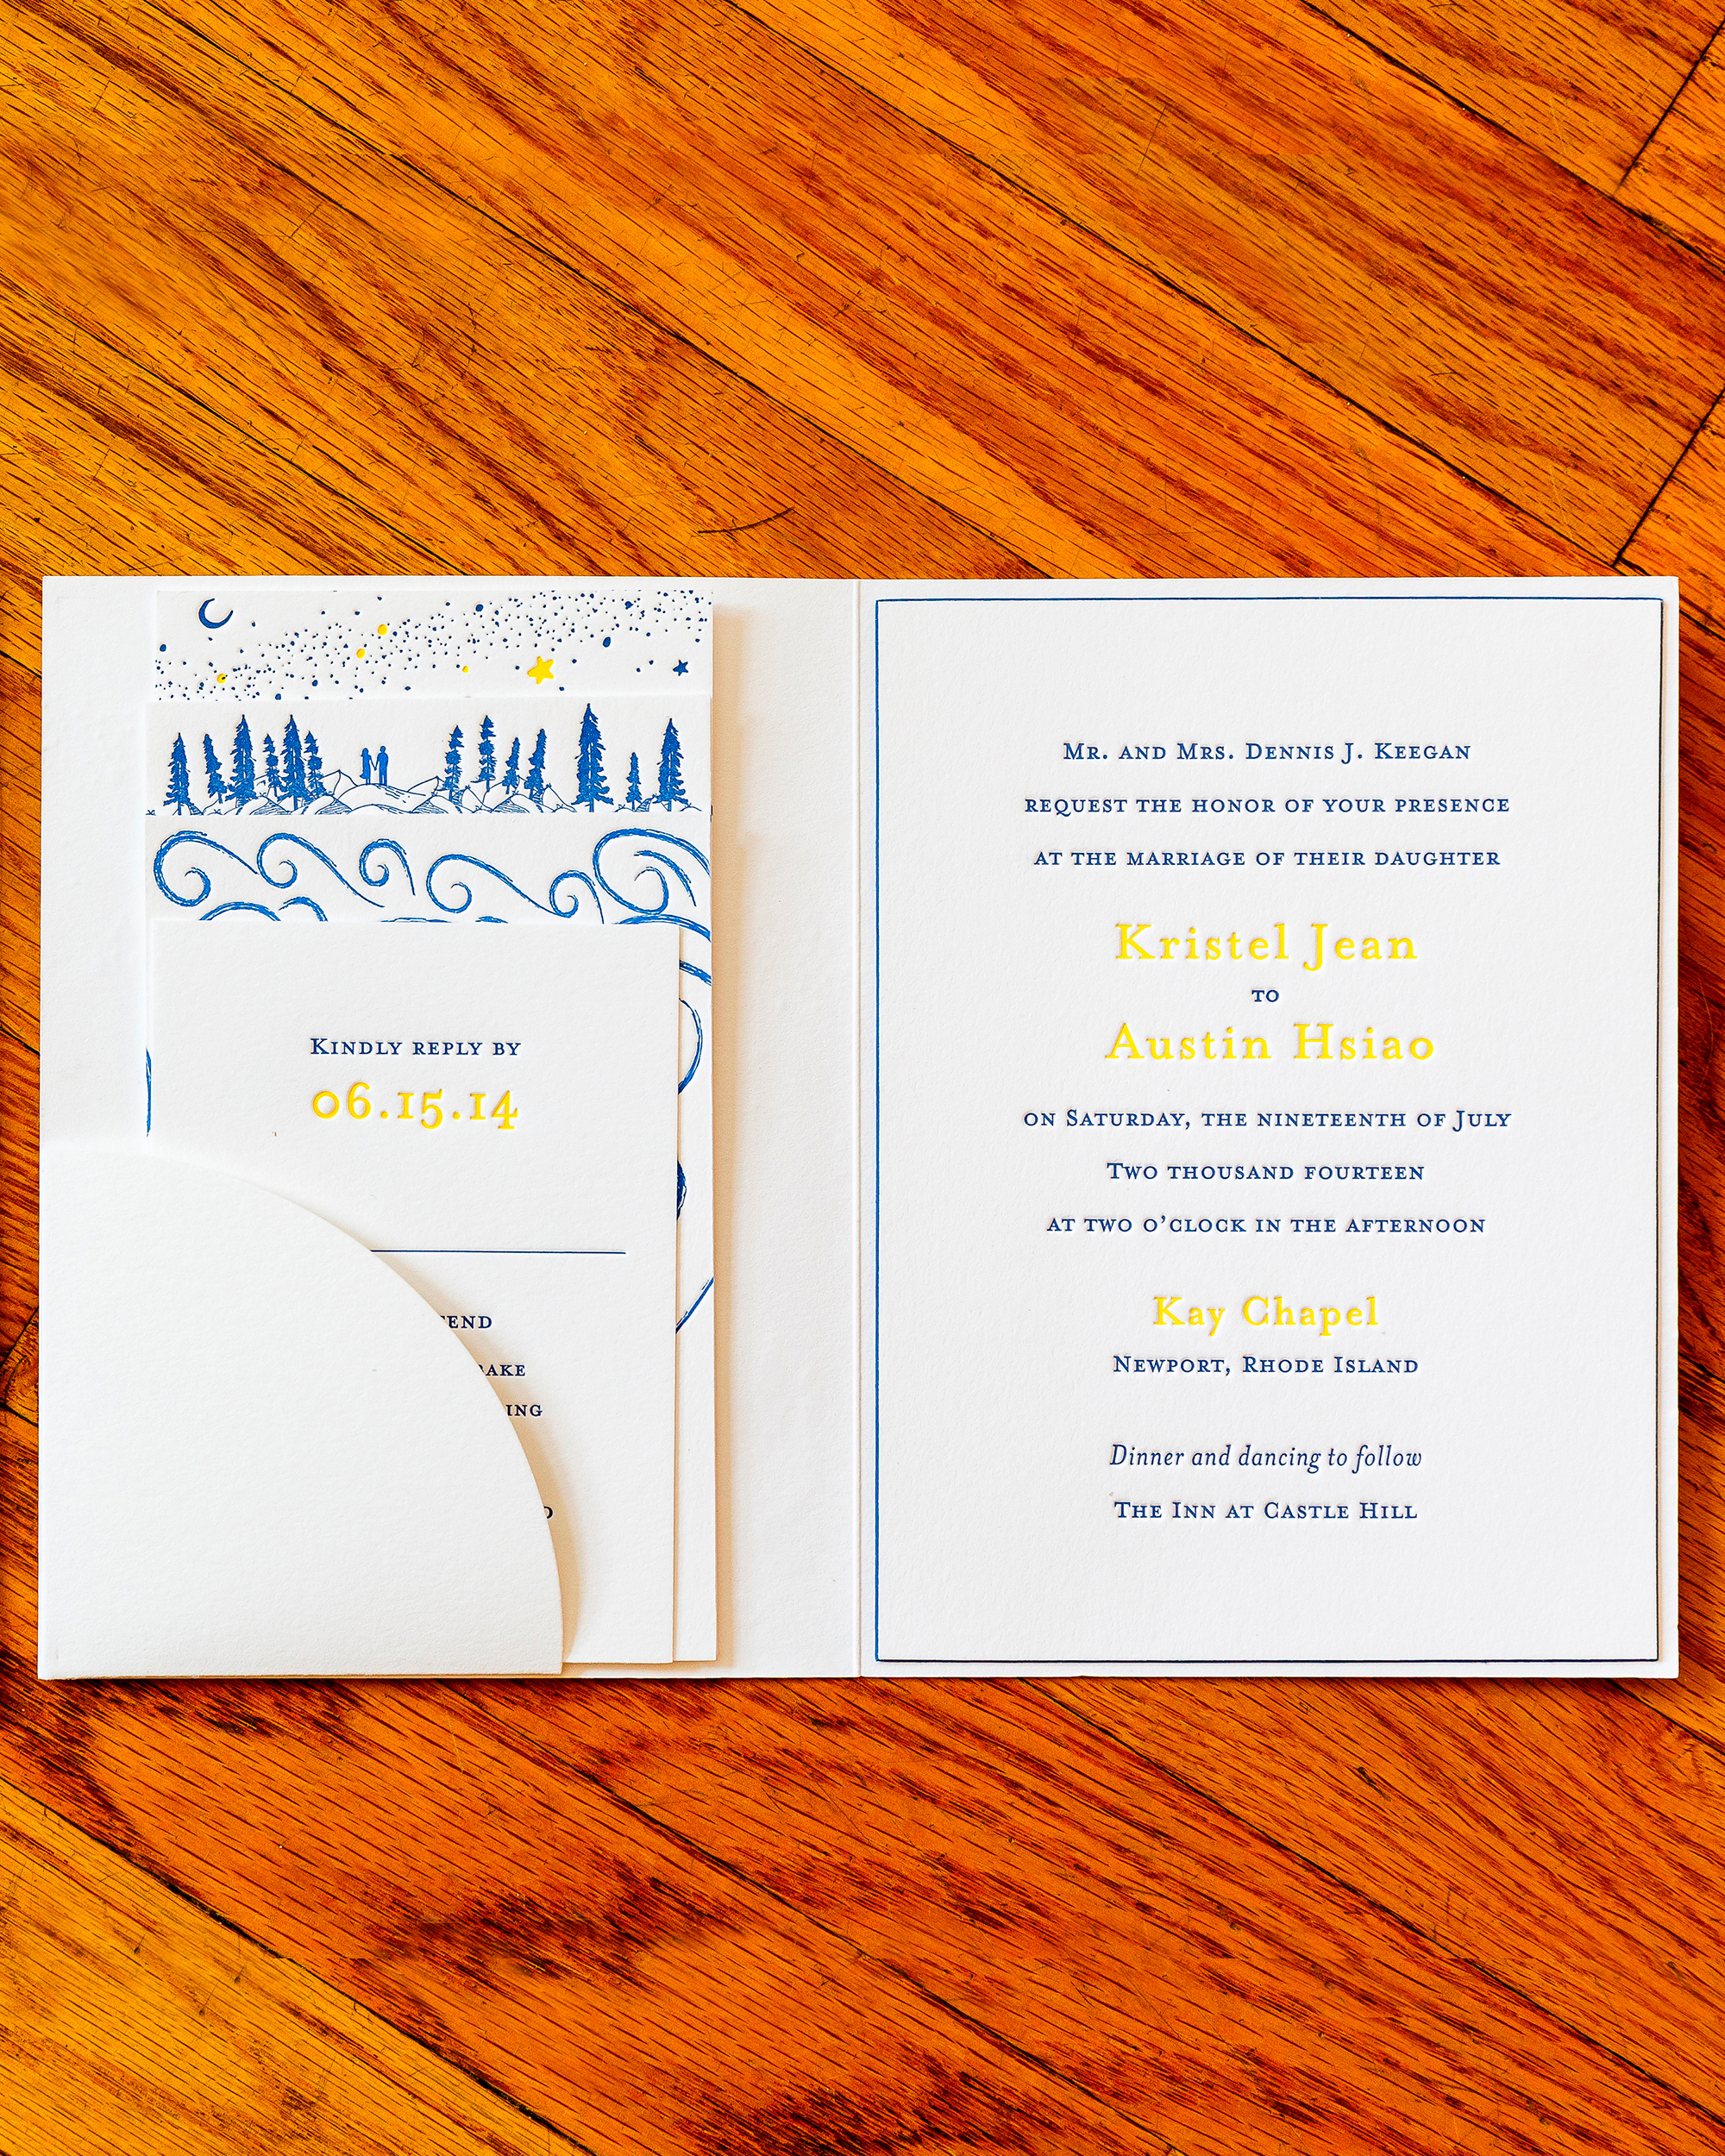 kristel-austin-wedding-invite-0282-s11860-0415.jpg